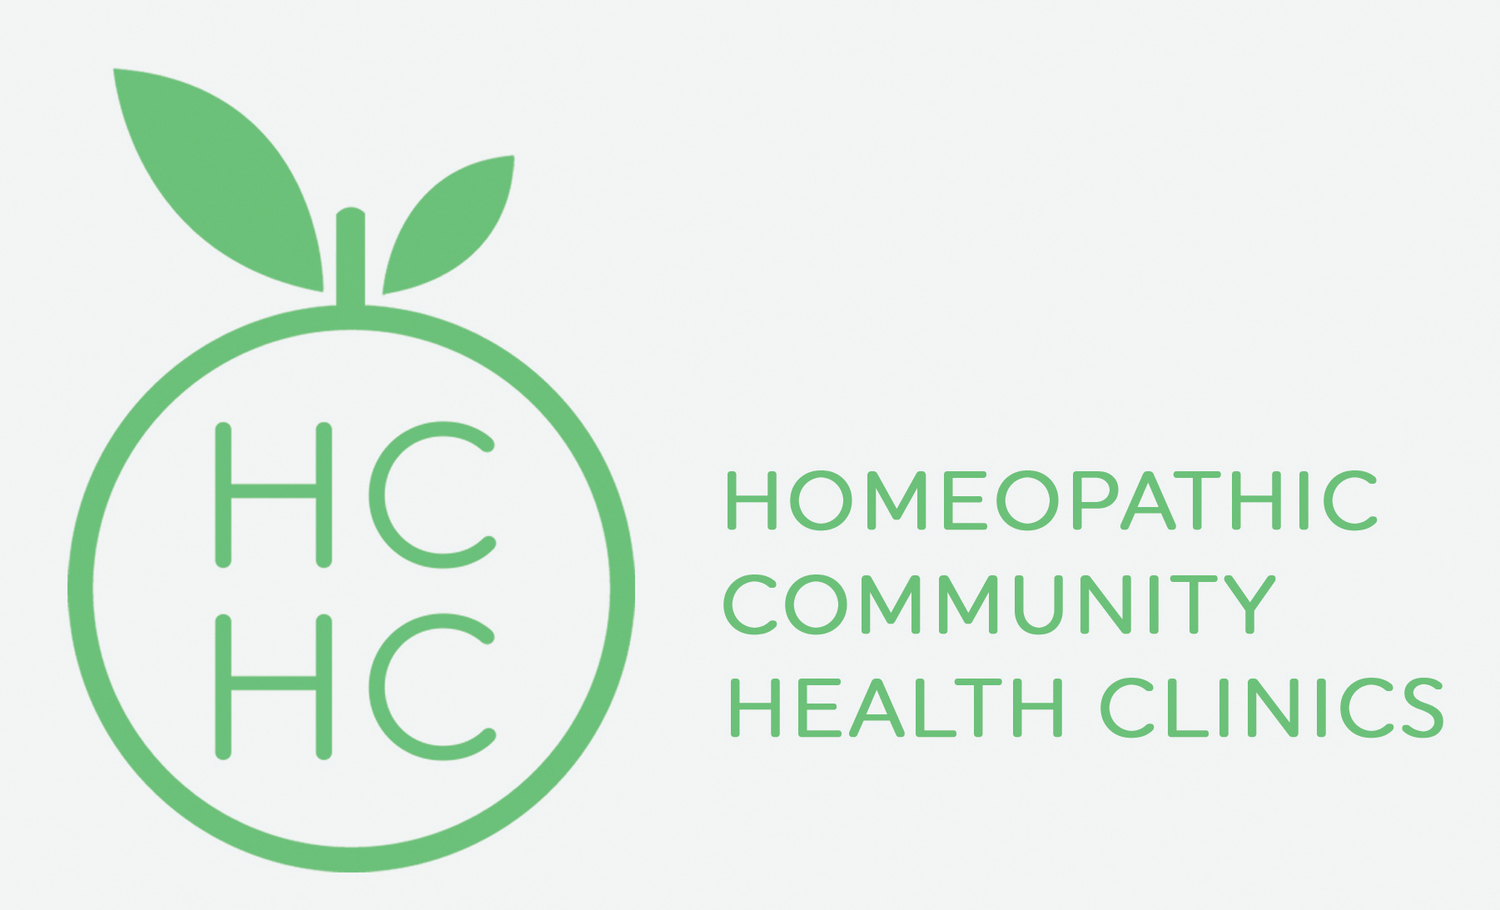 Homeopathic Community Health Clinics